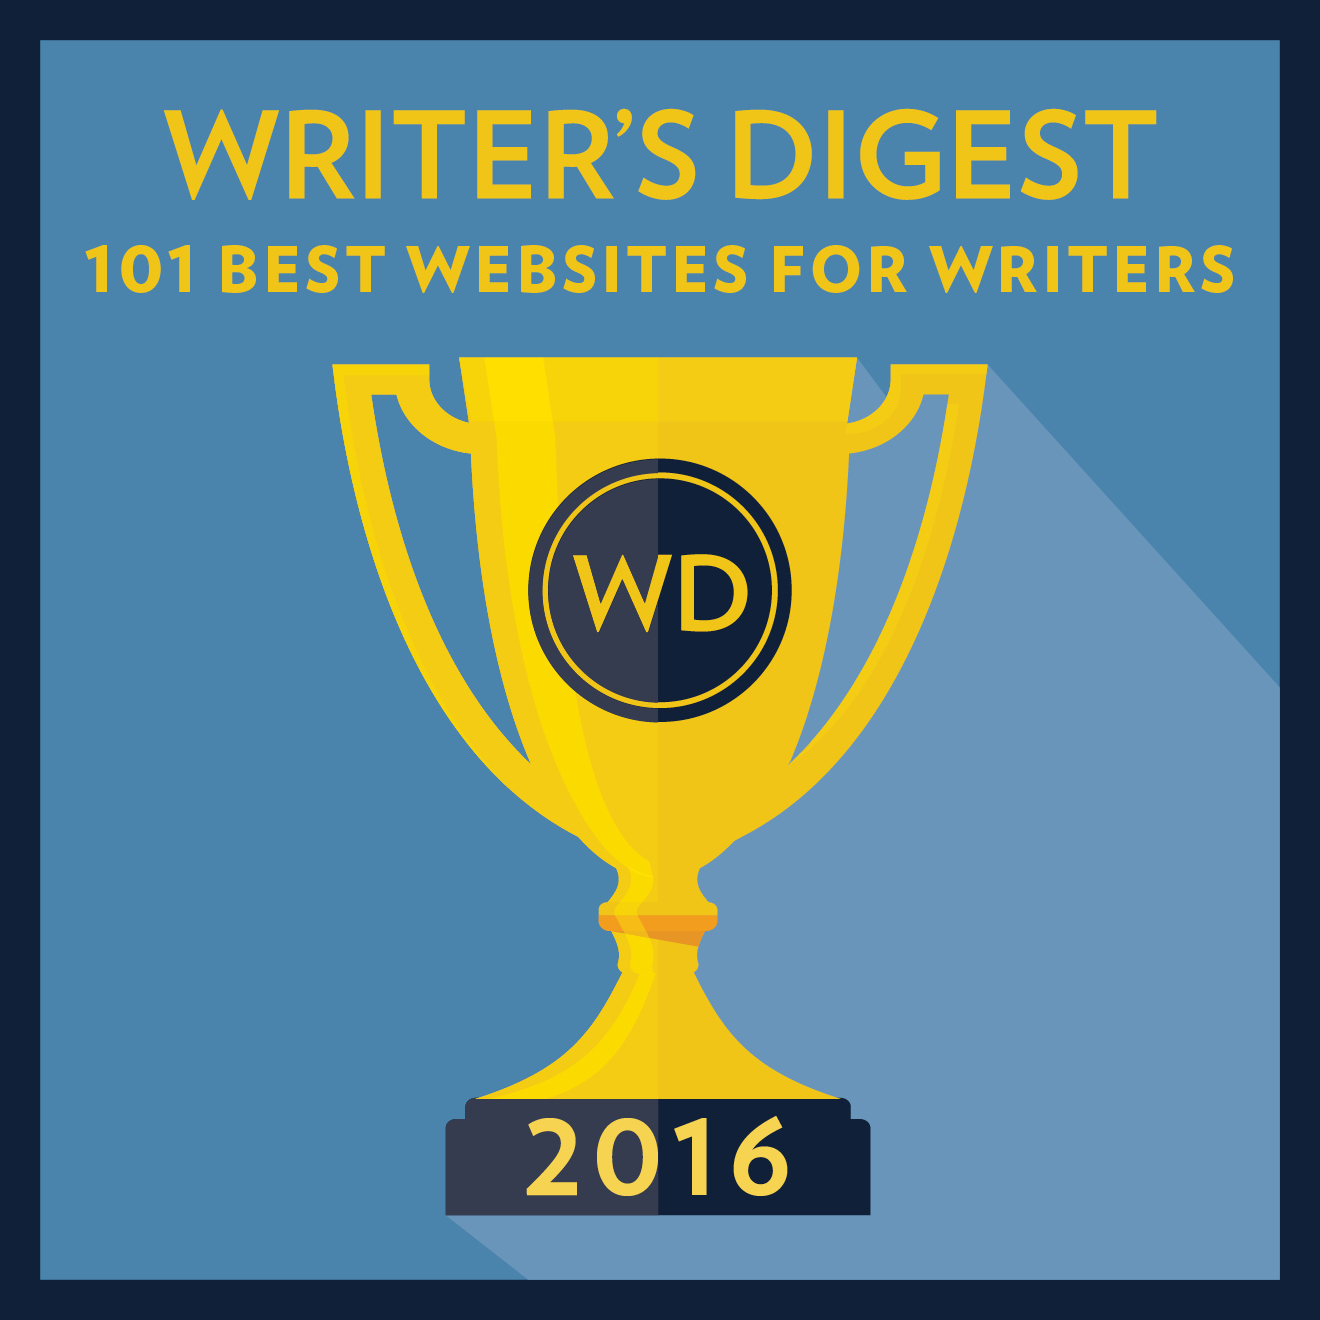 Writer's Digest 101 Best Websites for Writers 2016